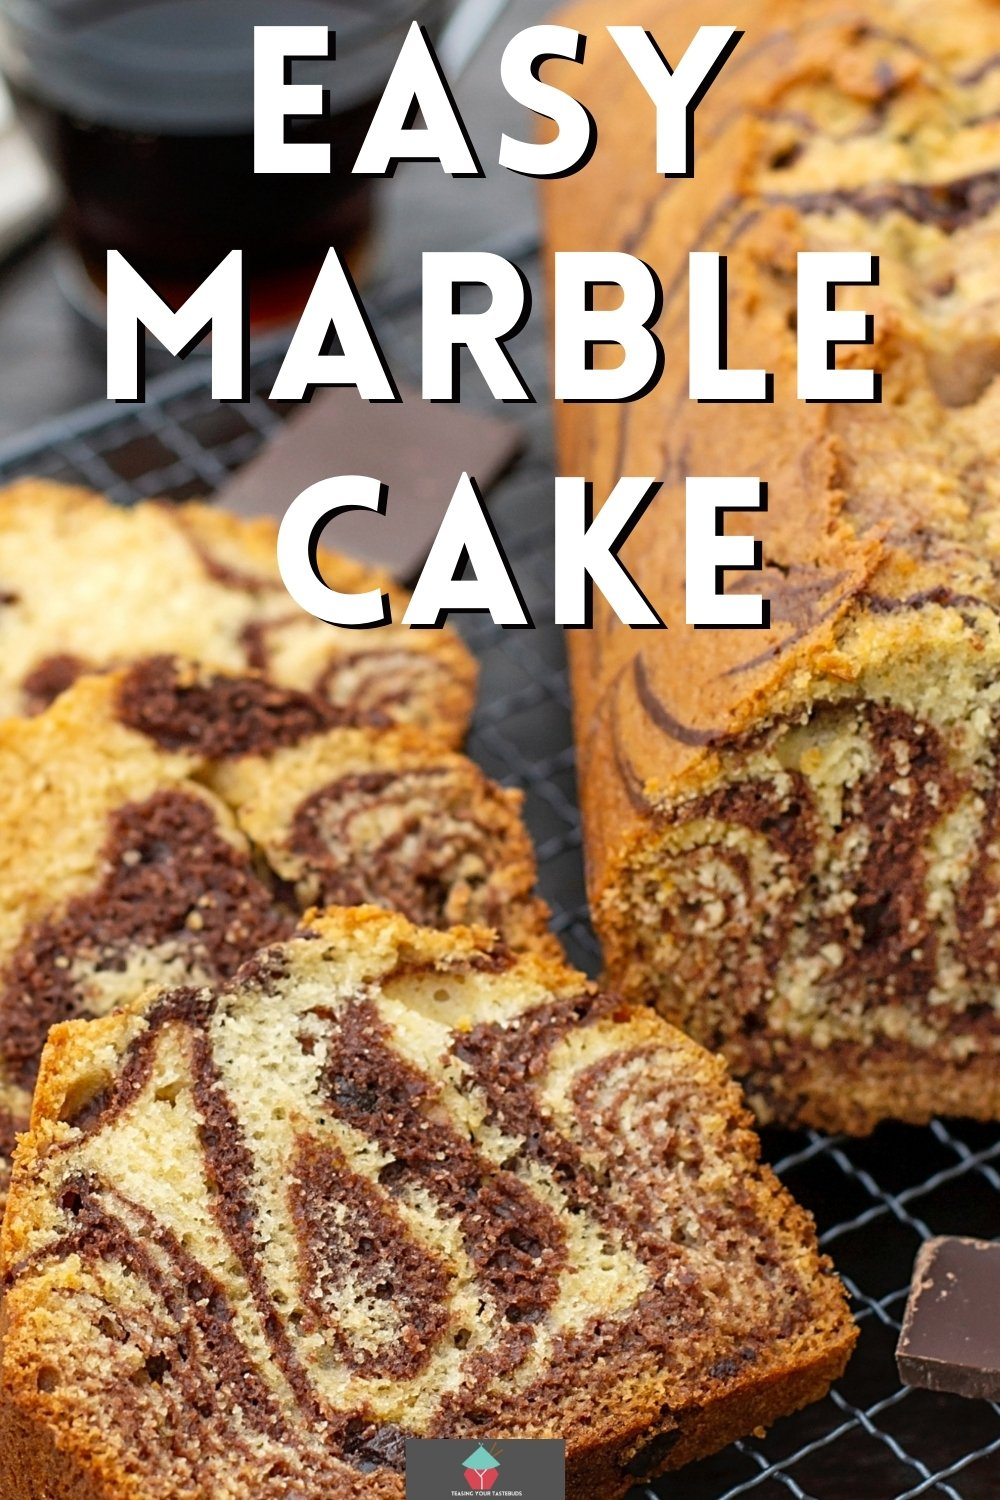 Easy Marble Cake, made of vanilla and chocolate cake batter, swirled together for a marbled effect and baked to give you a lovely soft texture, rich in flavor. Plus a recipe for chocolate mousse frosting. Delicious!